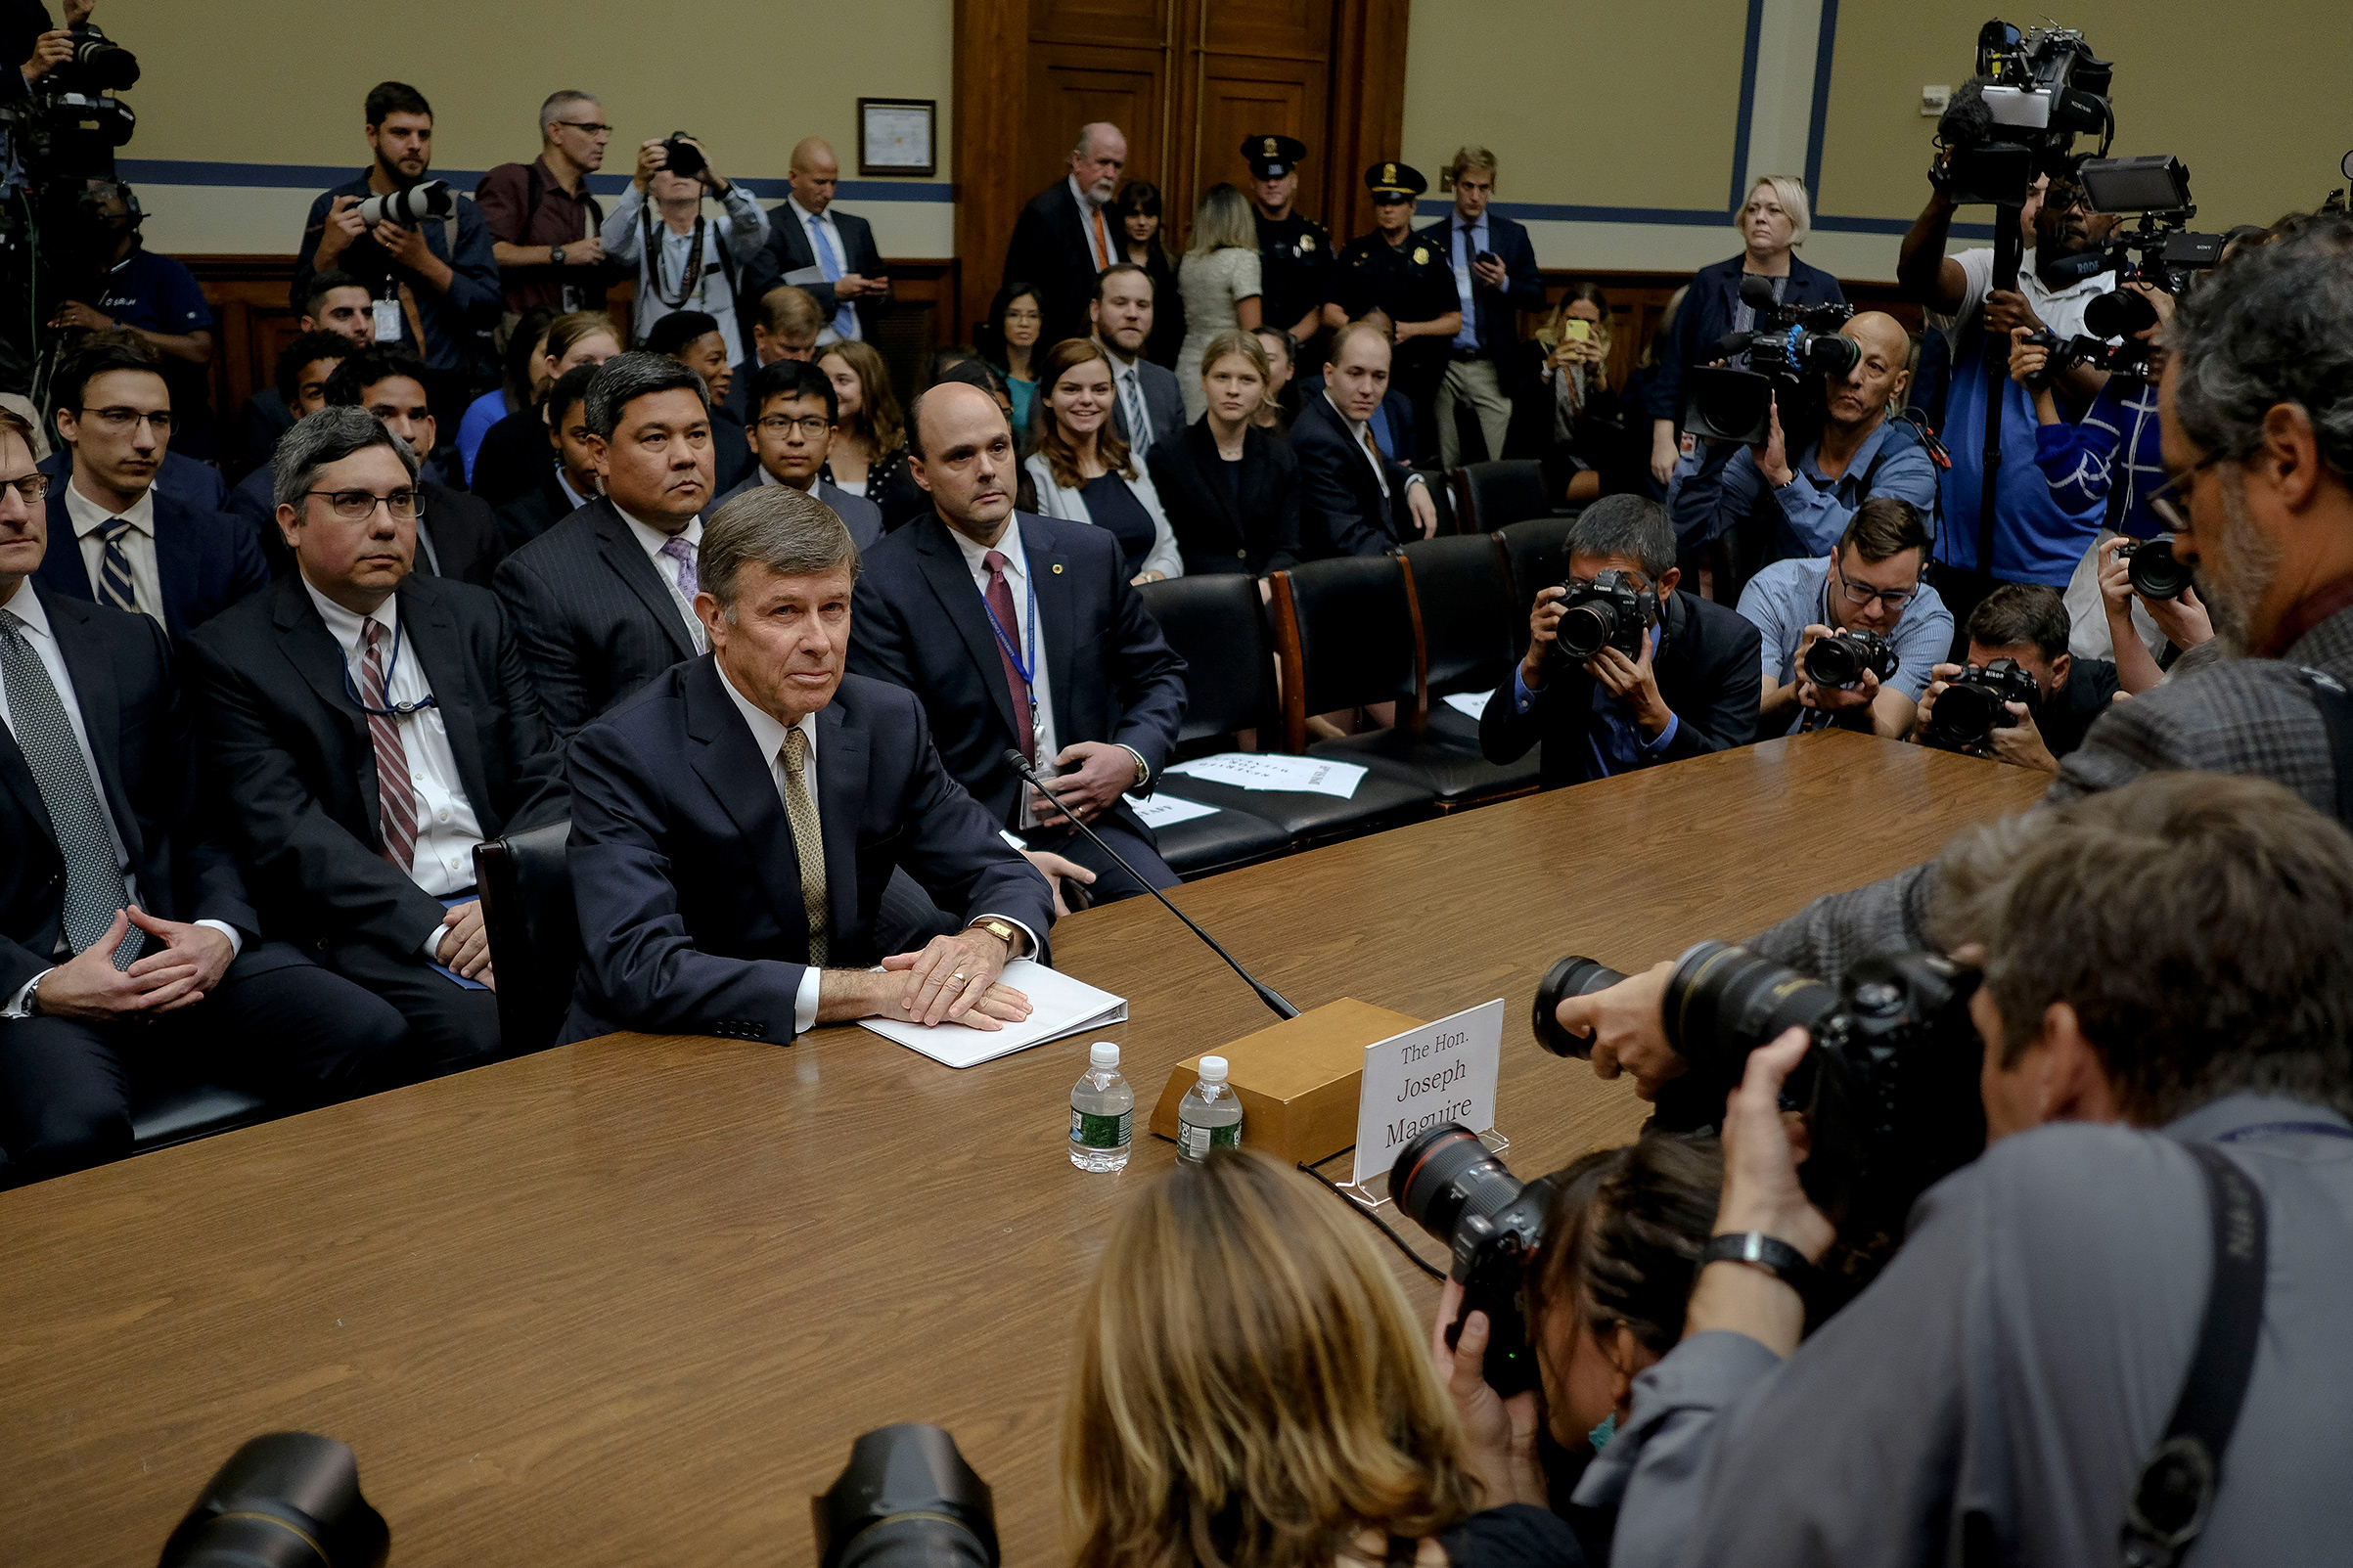 Acting Director of National Intelligence Joseph Maguire enters the House Intelligence Permanent Select Committee hearing room to testify on the whistleblower at the Rayburn House Office Building on Capitol Hill in Washington, D.C. on Sept. 26, 2019.